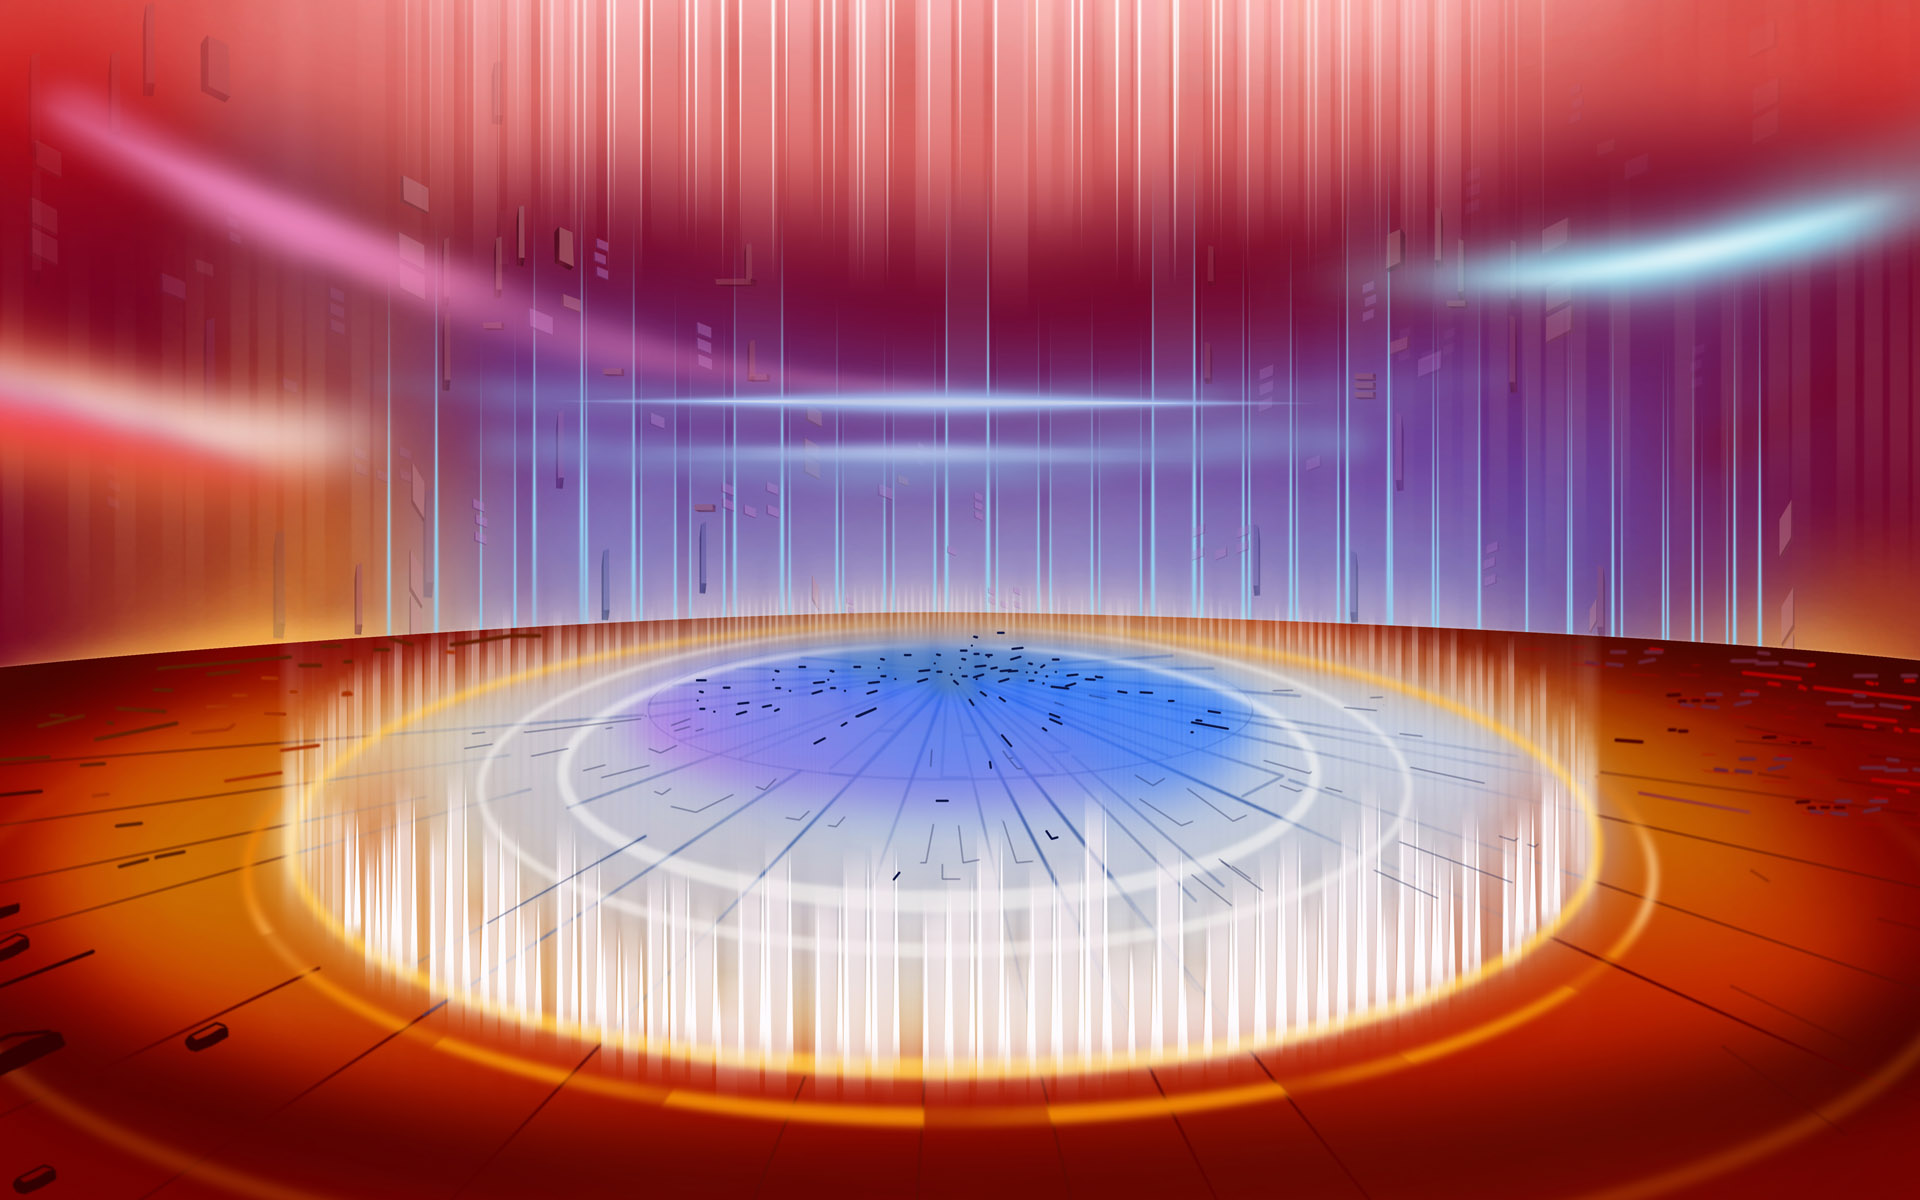 Colorful background of high-definition 21662